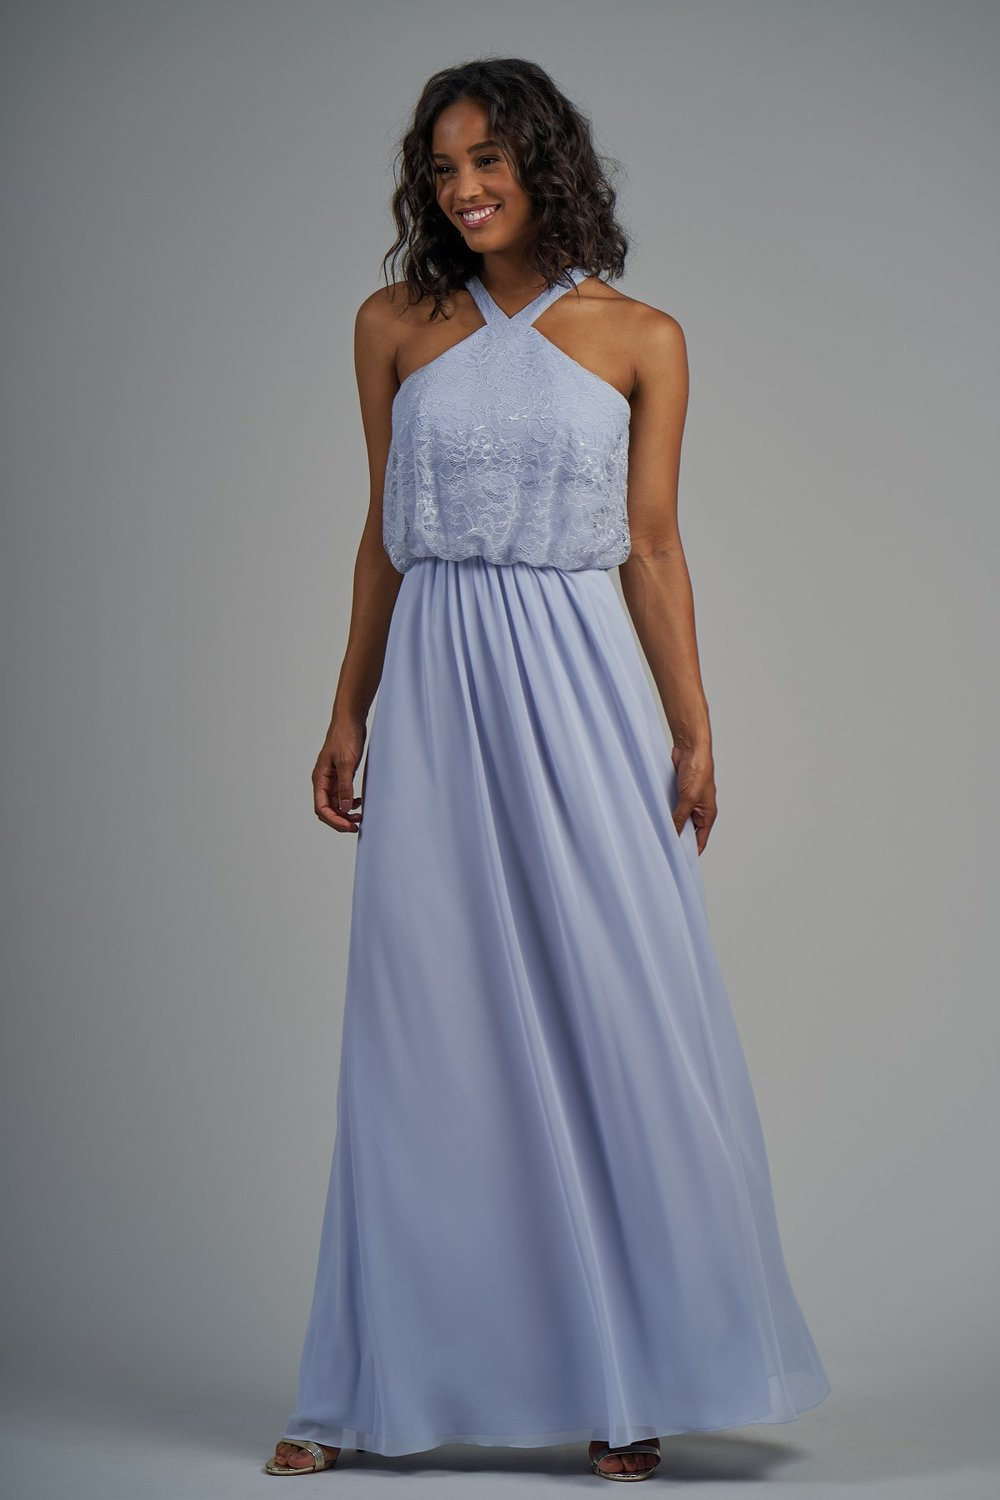 B213014 -  Pretty lace and poly chiffon floor length bridesmaid dress with a high neckline and flowy lace bodice. Detailed gathers on the flowy skirt to complete the look.    Available in 22 colors